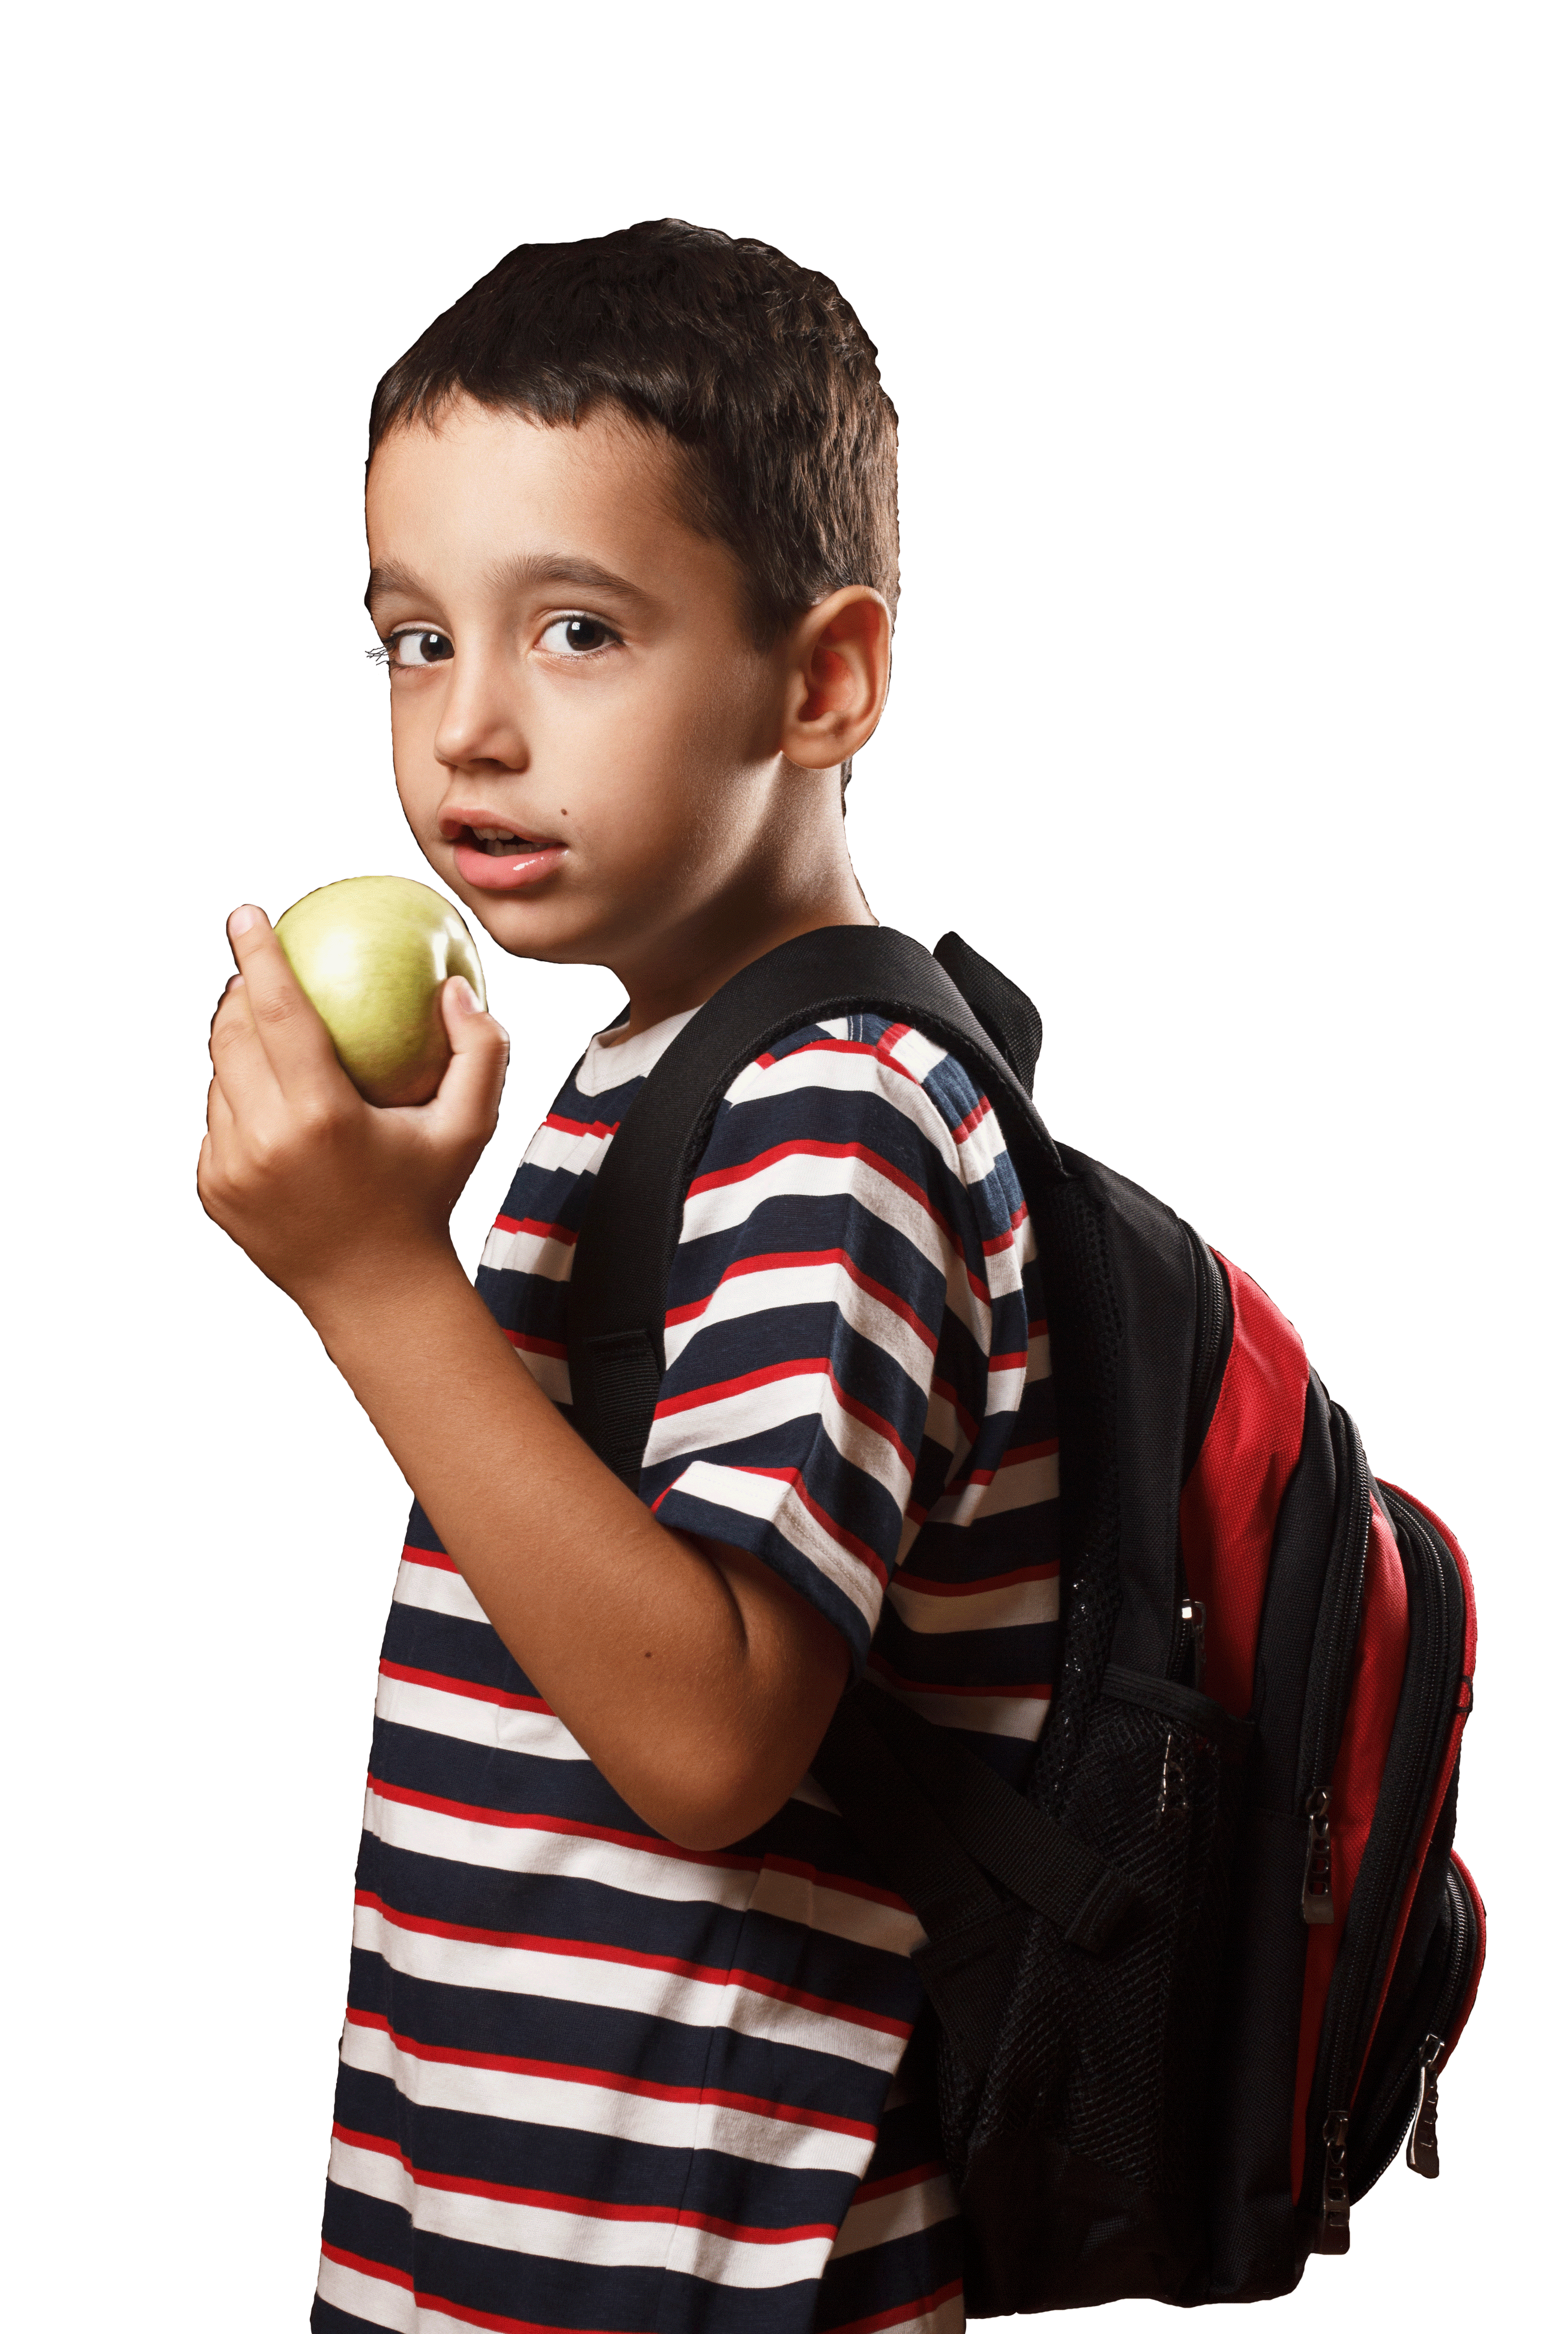 ac992a5cfb34 Support our Backpack Snacks program - UMFS